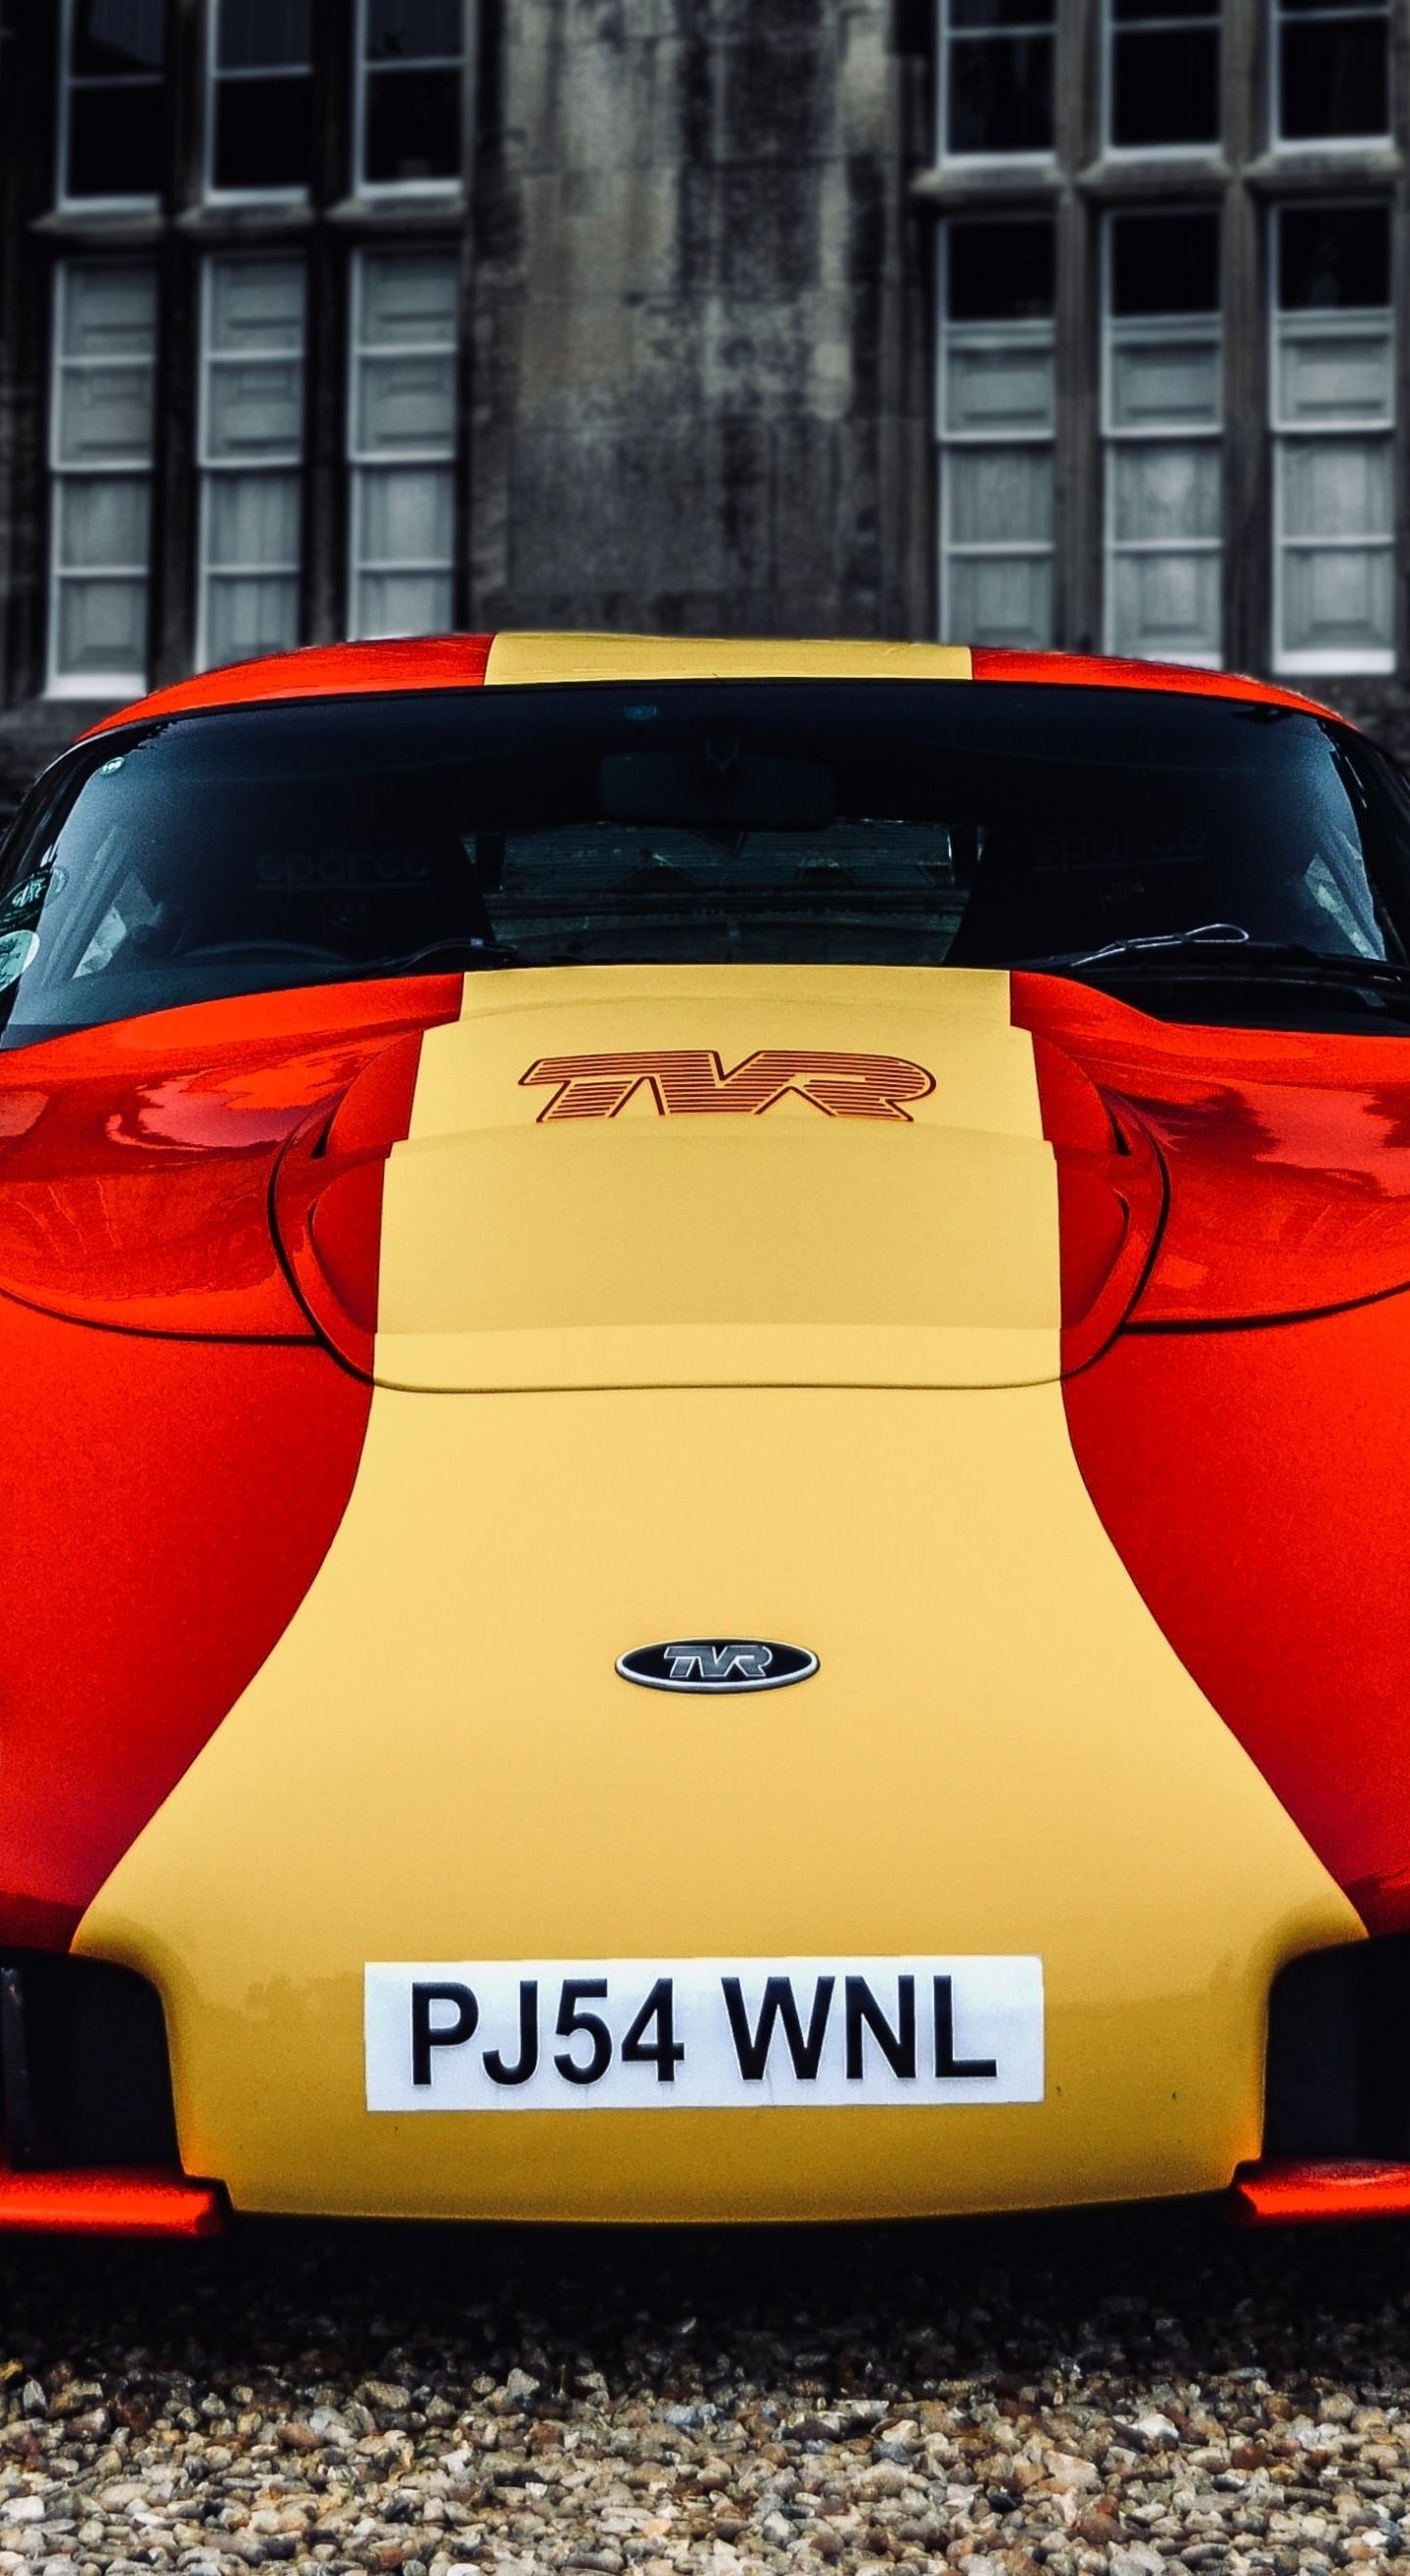 1440x2630 Tvr Sport Car Front View Wallpaper In 2020 Sports Cars View Wallpaper Car